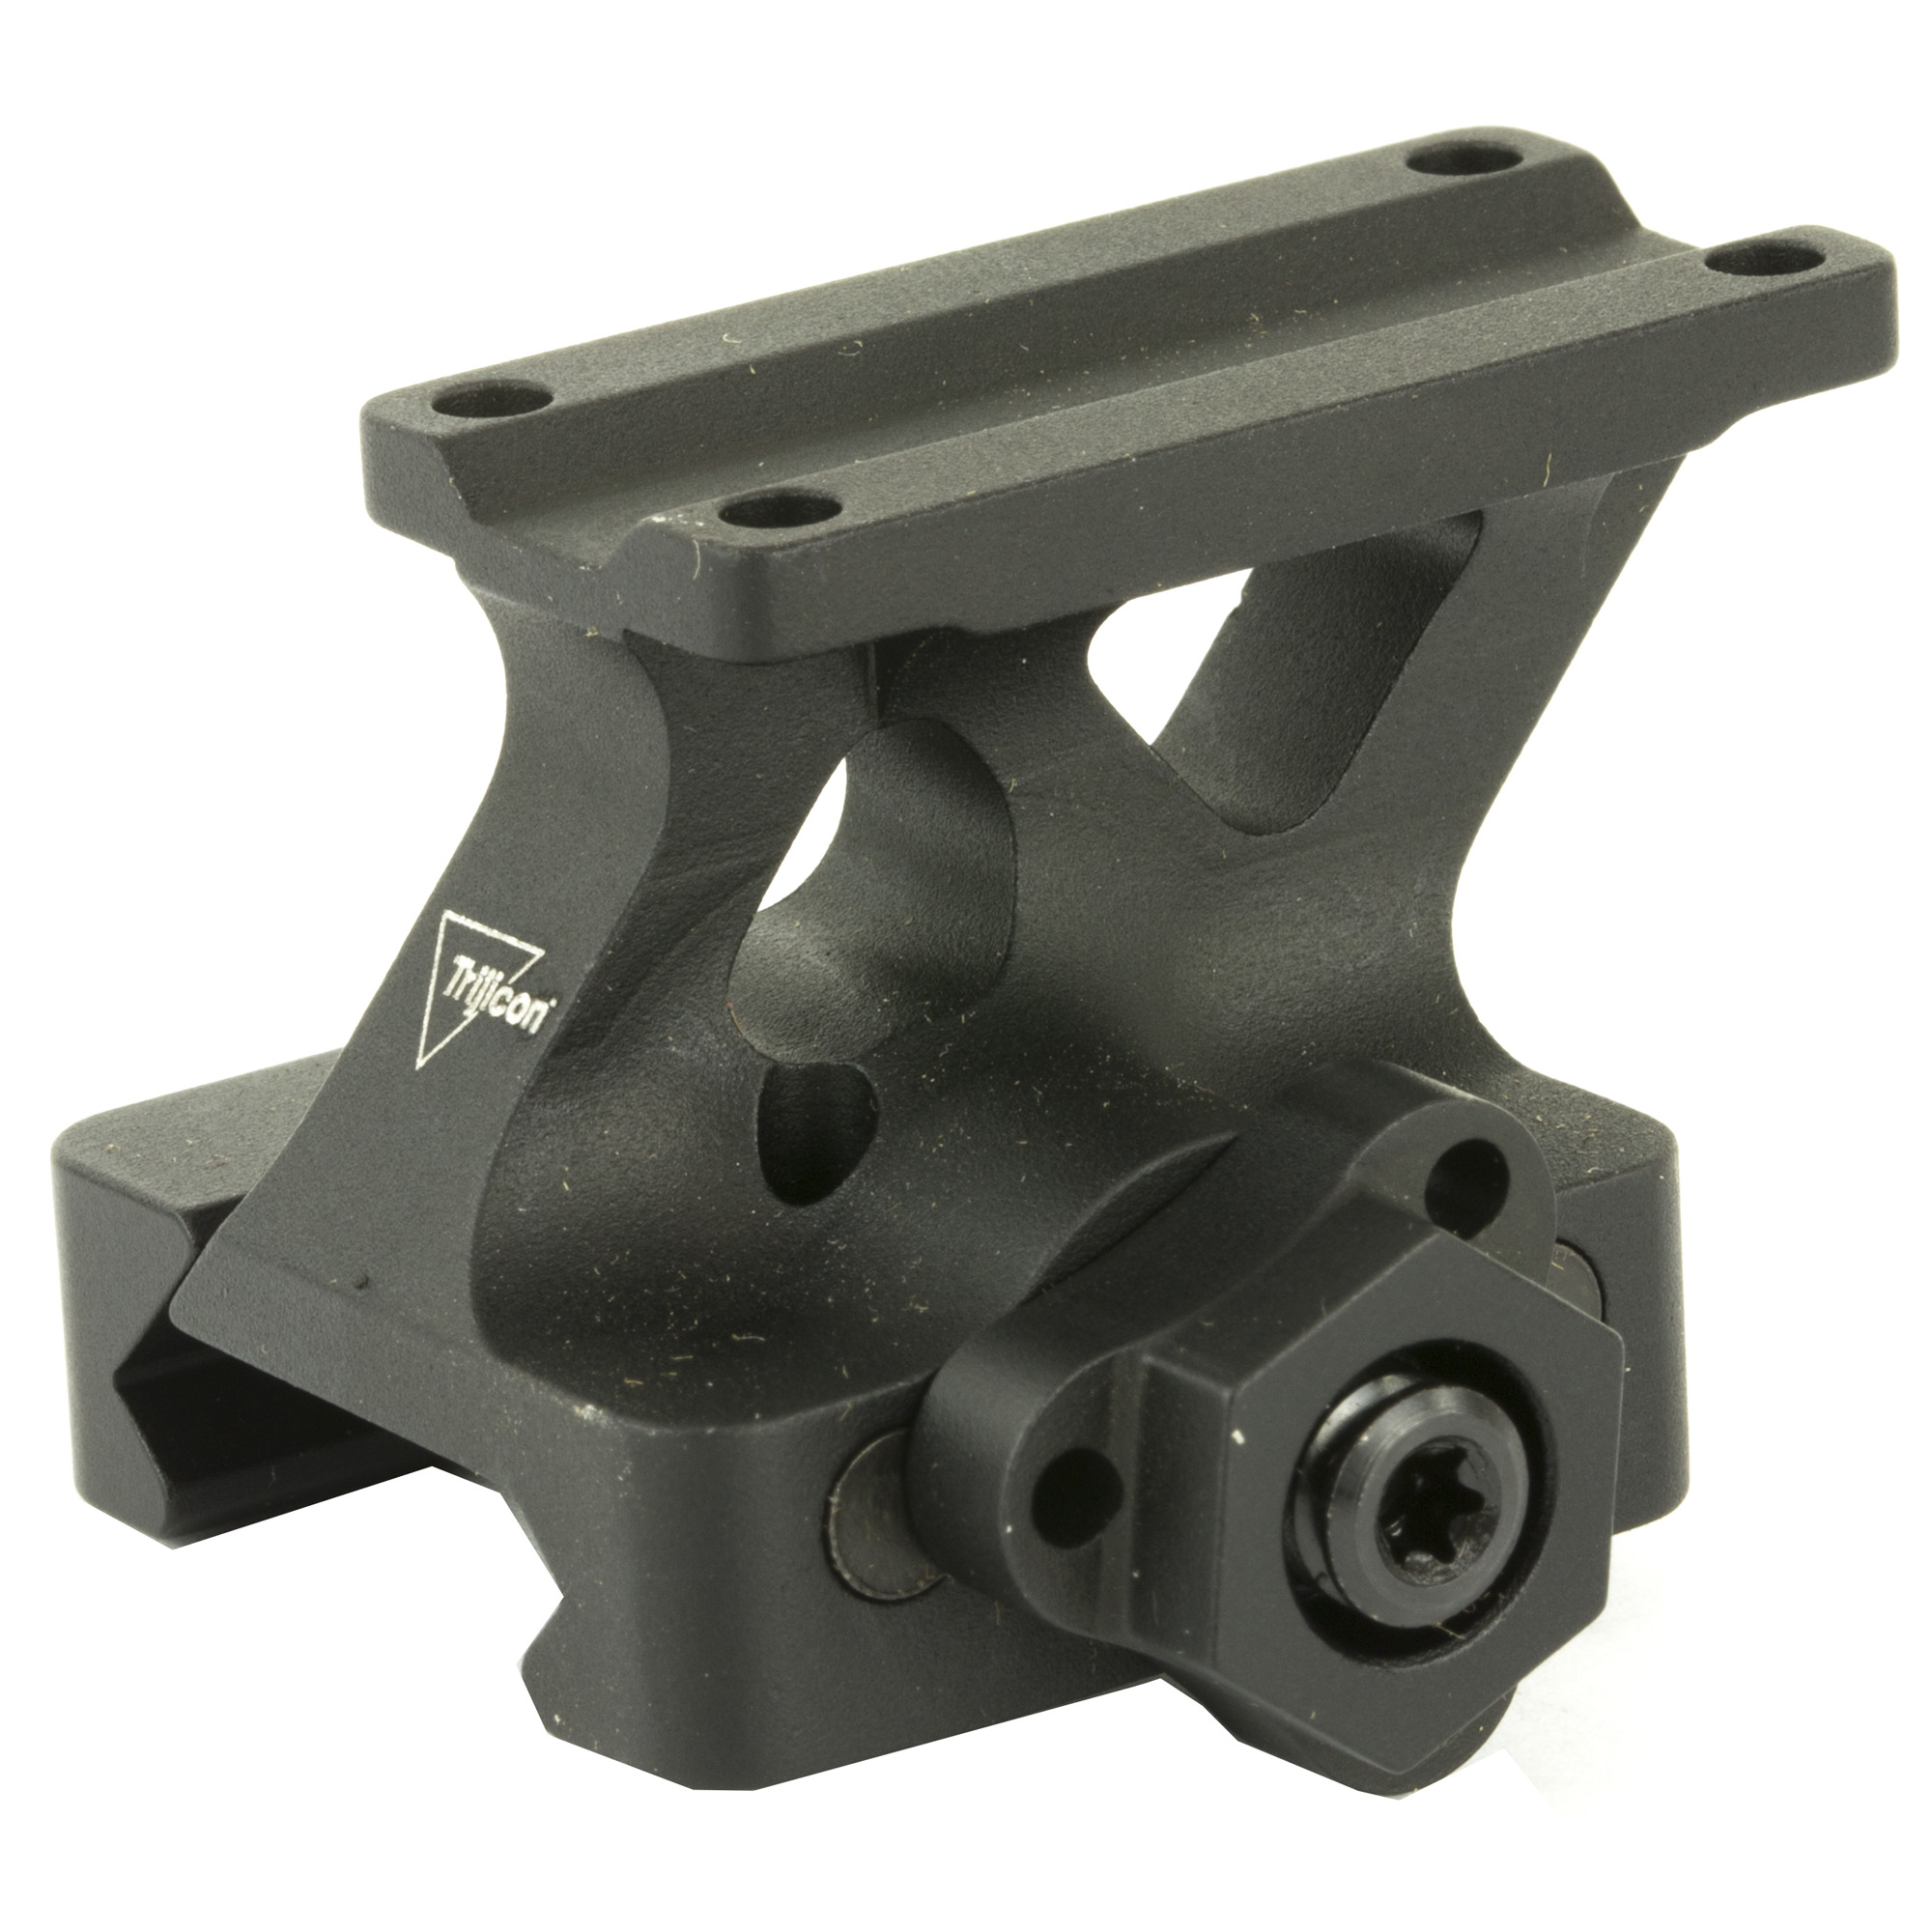 "The Trijicon MRO(R) 1/3 Co-Witness Quick Release mount features a Mil-Spec drop test rated 7075-T6 aluminum design"" with an easy to use one handed tool less mounting. Return to Zero features in a low weight"" low profile design which works with any Picatinny rail. This means that the MRO is mounted at the same height as the iron sights. The optic's aiming dot will appear at the top of the iron sight post. This mount is typically used with flip up iron sights."